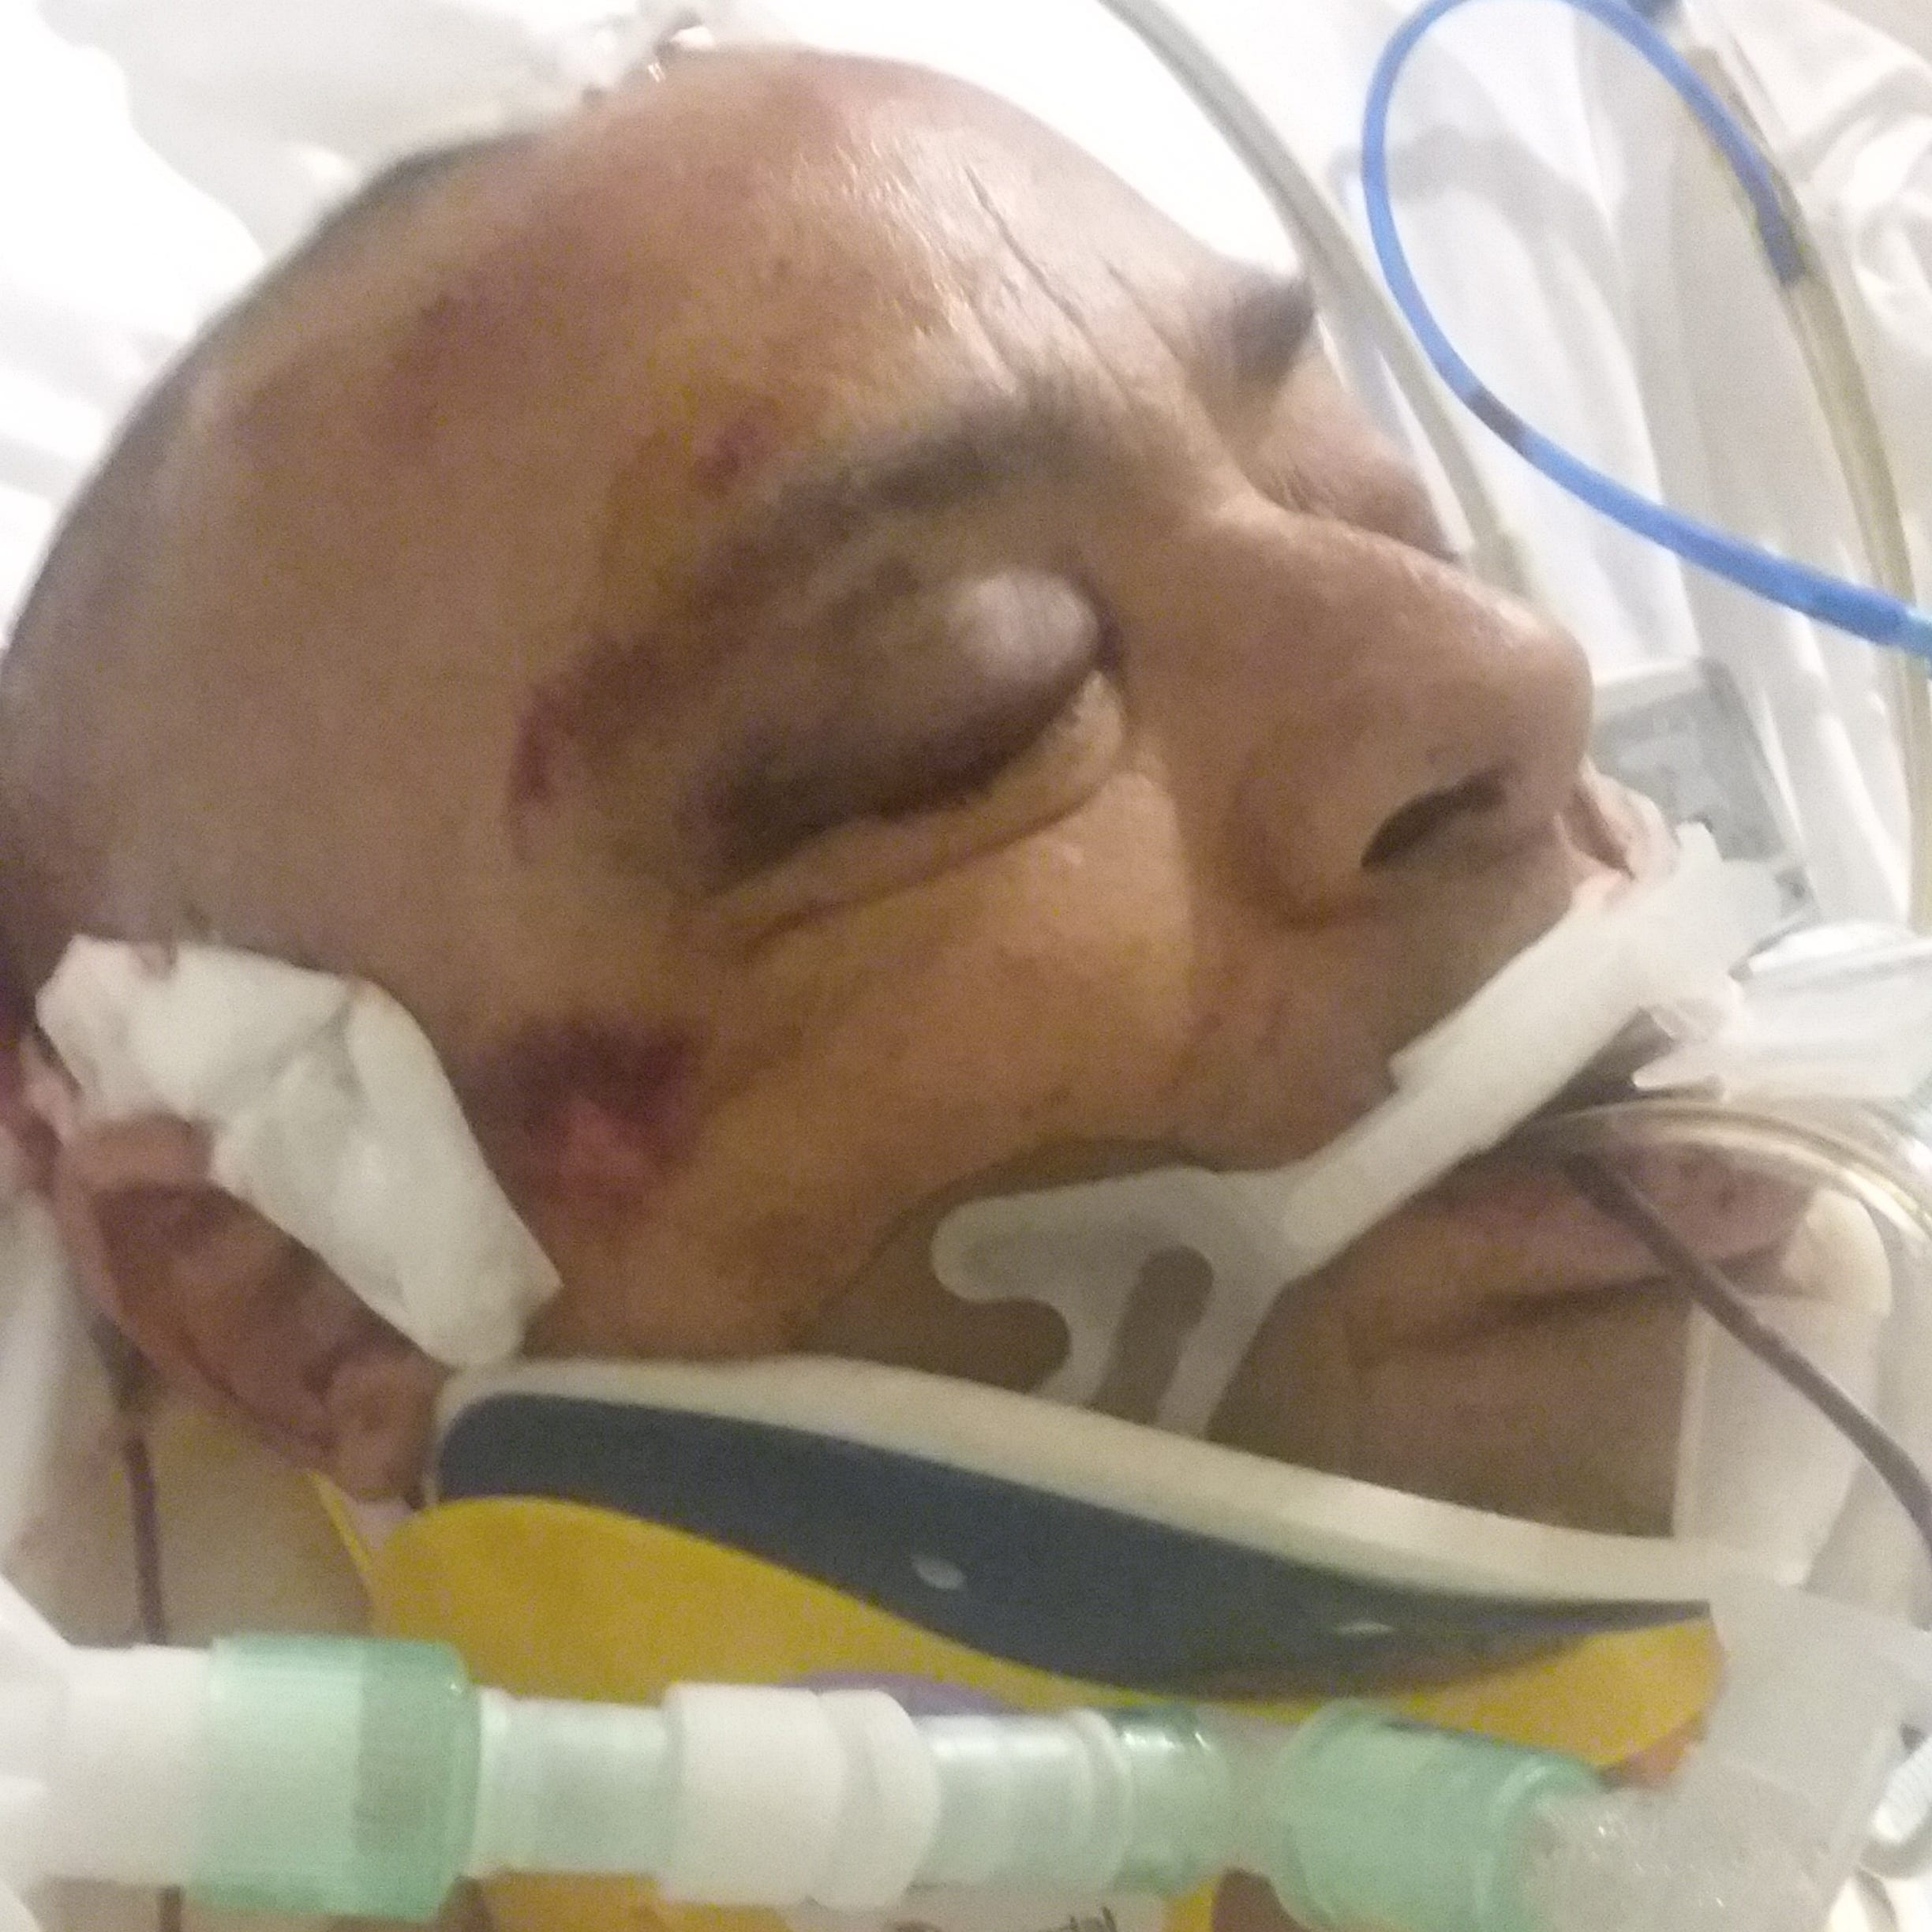 Vineland man on life support after violent arrest at Inspira Medical Center